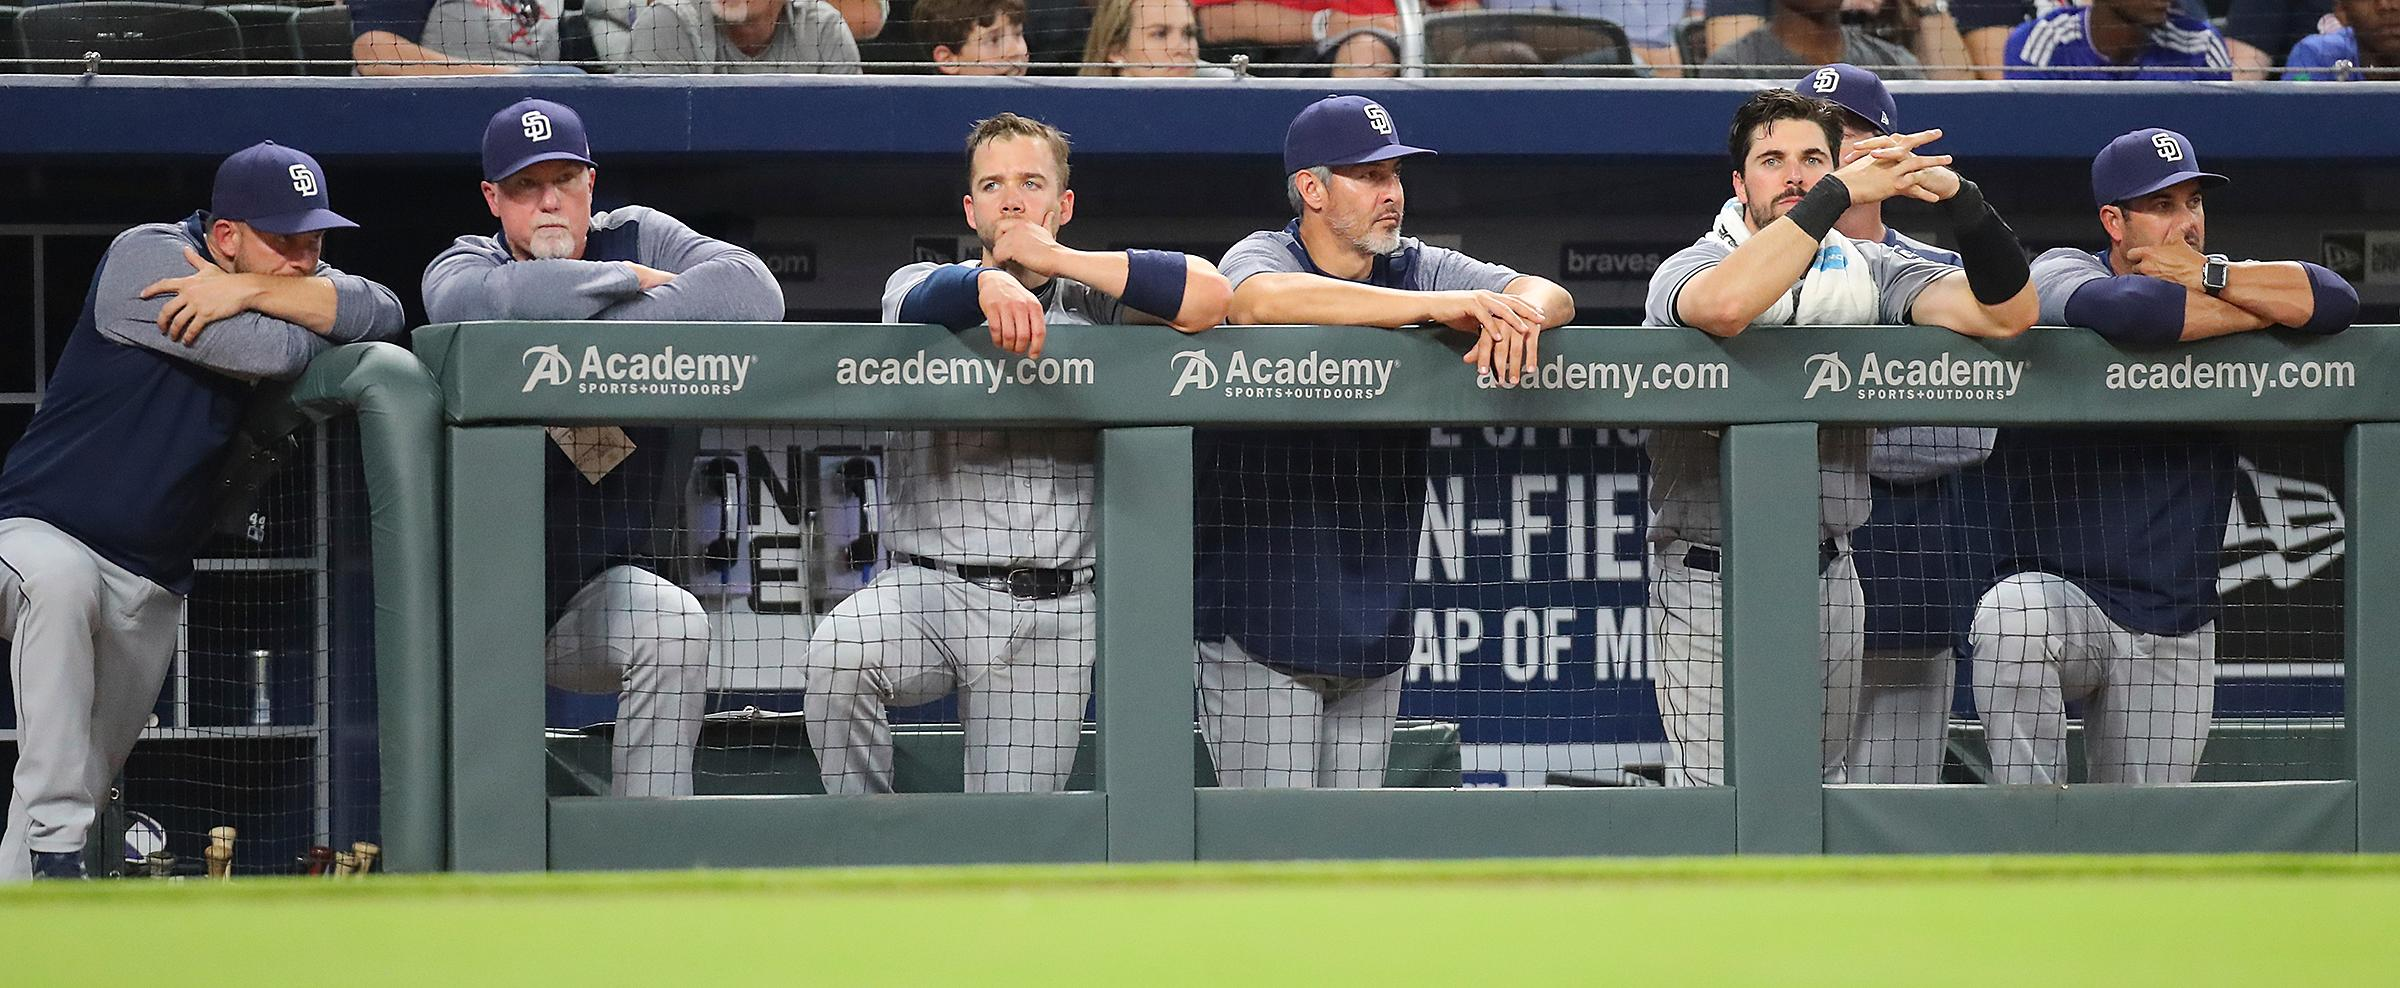 The San Diego Padres players watch their game against the San Diego Padres from the bench during a baseball game in Atlanta on Monday, April 17, 2017. Atlanta won, 5-4. (Curtis Compton/Atlanta Journal-Constitution via AP)